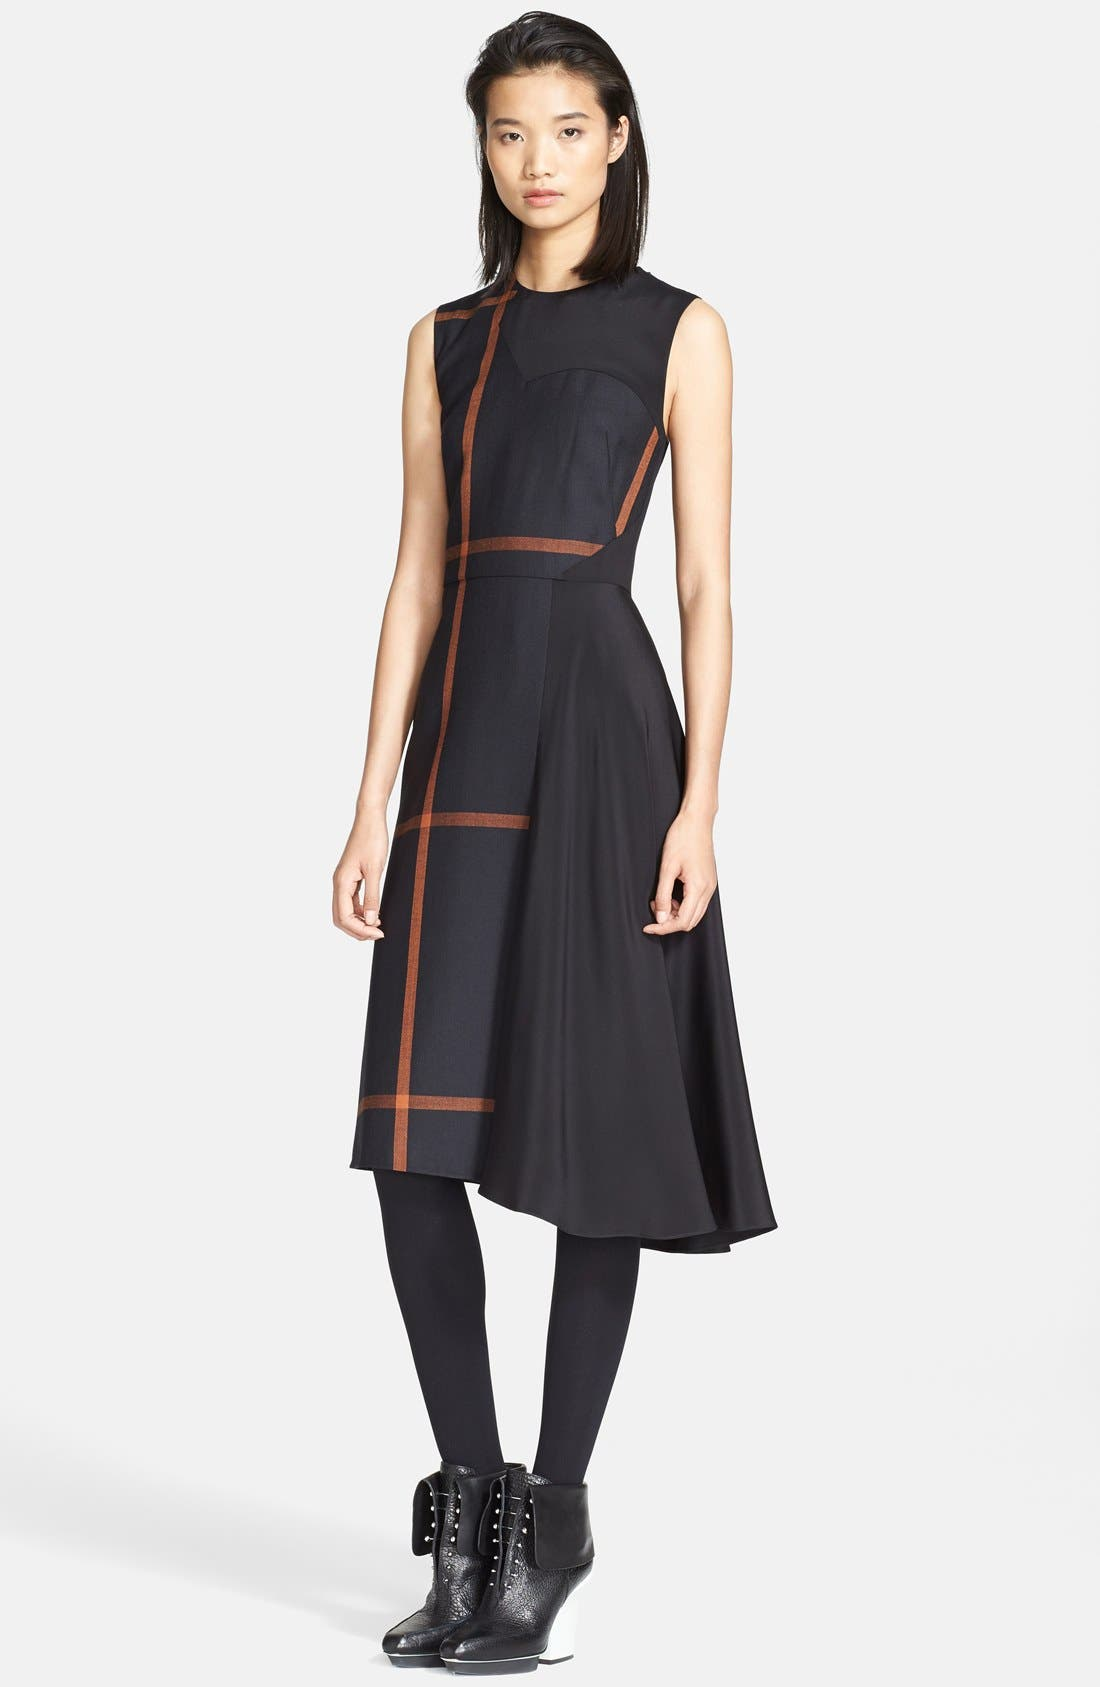 Alternate Image 1 Selected - 3.1 Phillip Lim 'Shadow' Satin Inset Dress